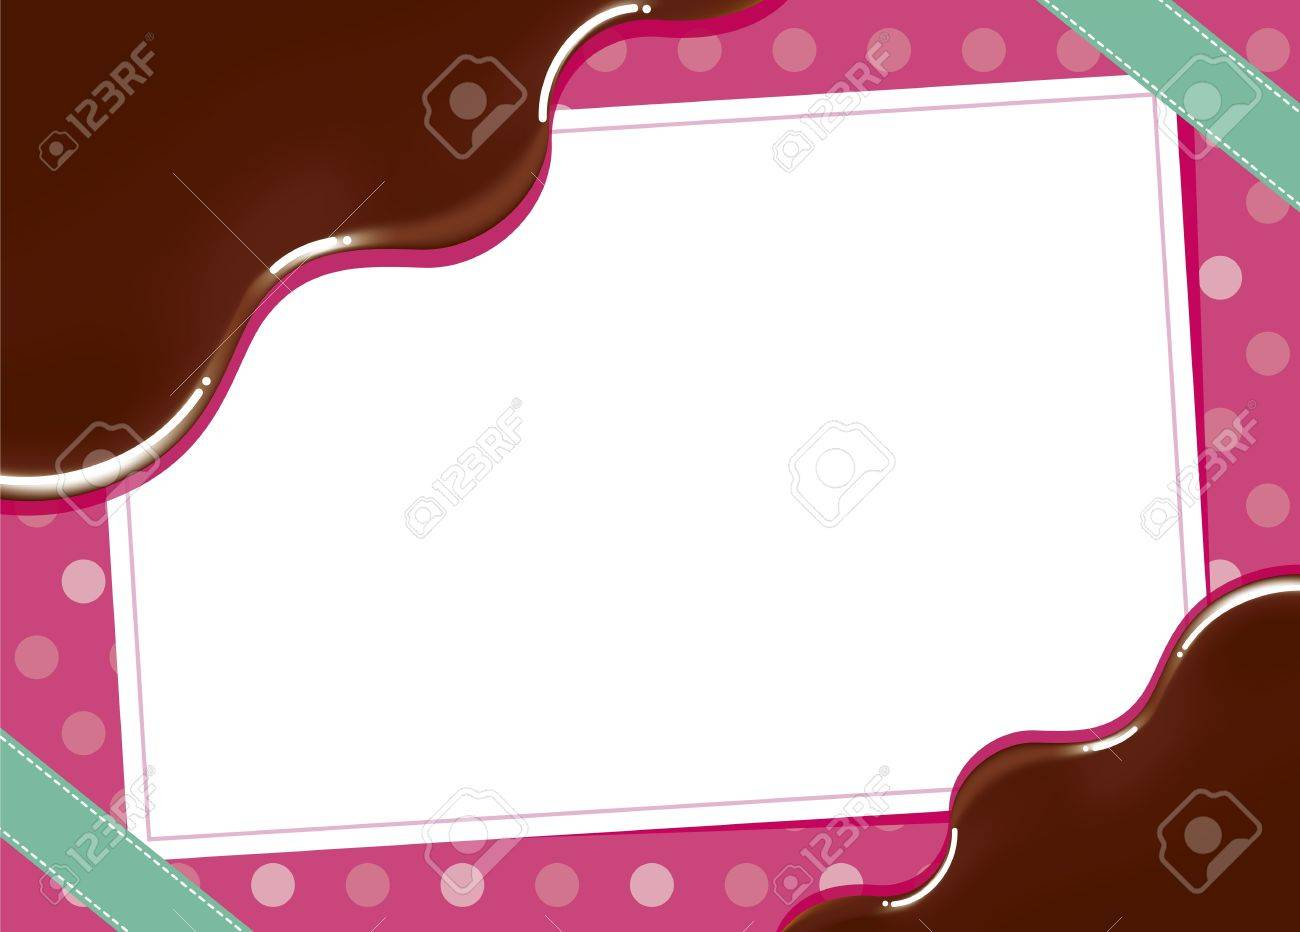 Cute Frame Of Chocolate Royalty Free Cliparts, Vectors, And Stock ...